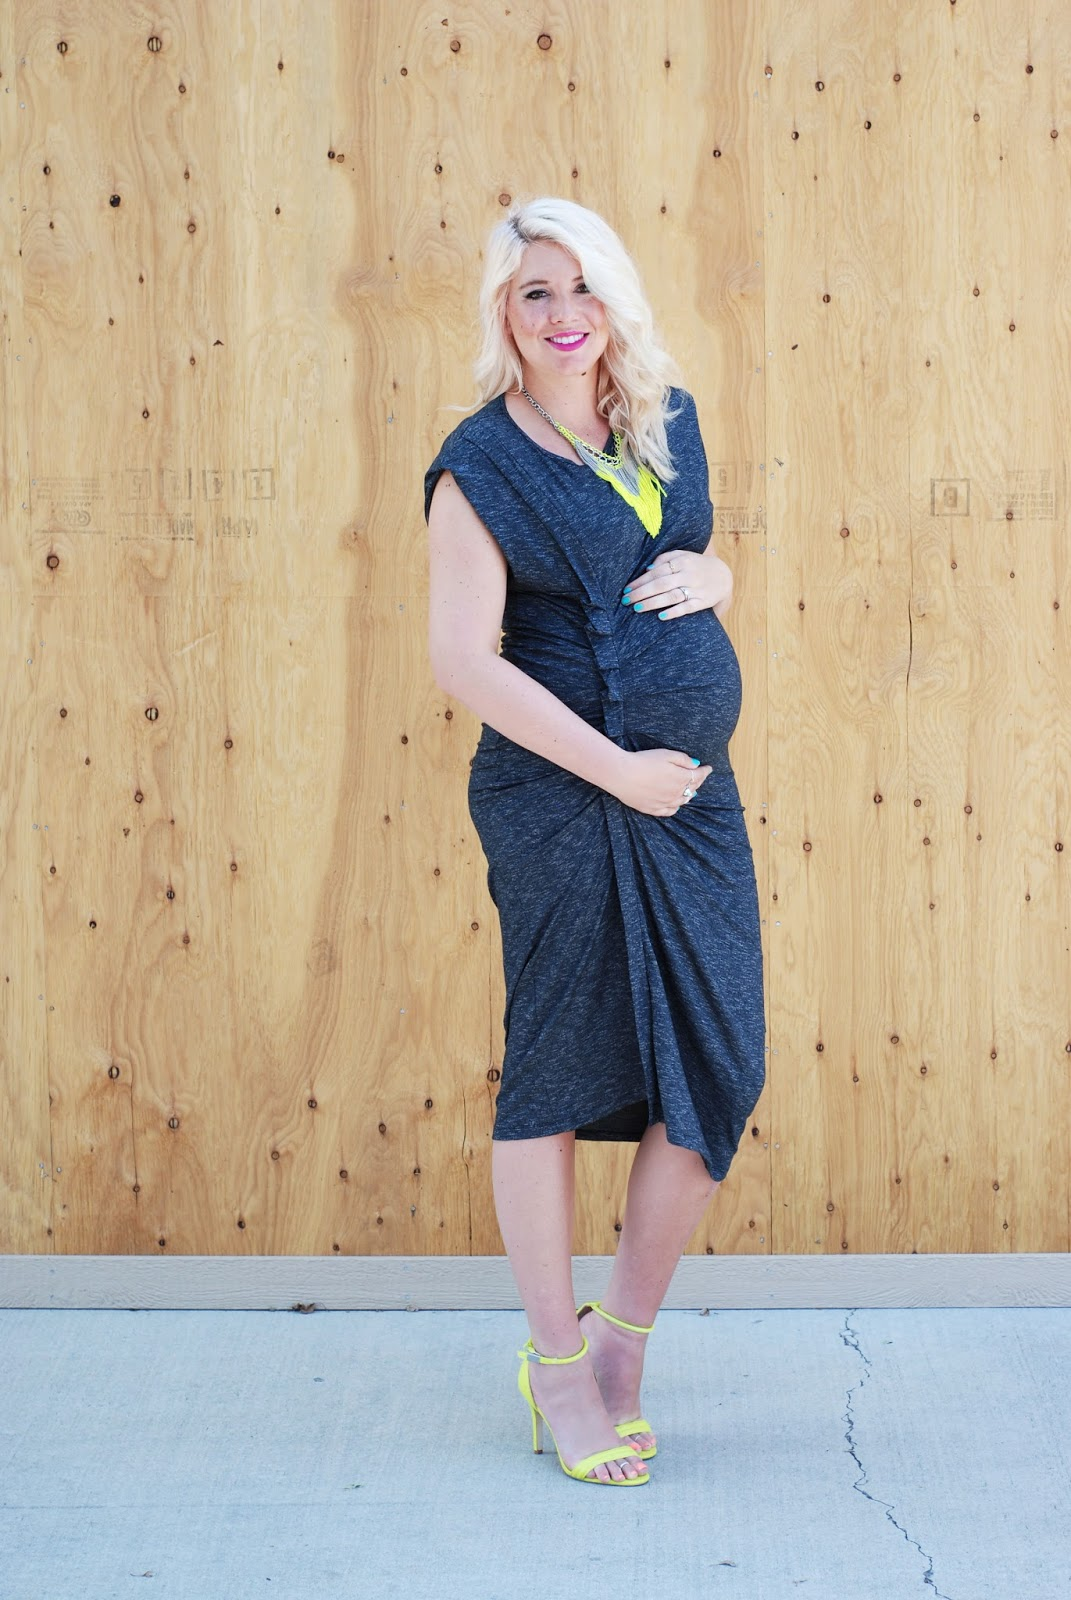 ASOS Maternity, Maternity Outfit, Modest Outfit